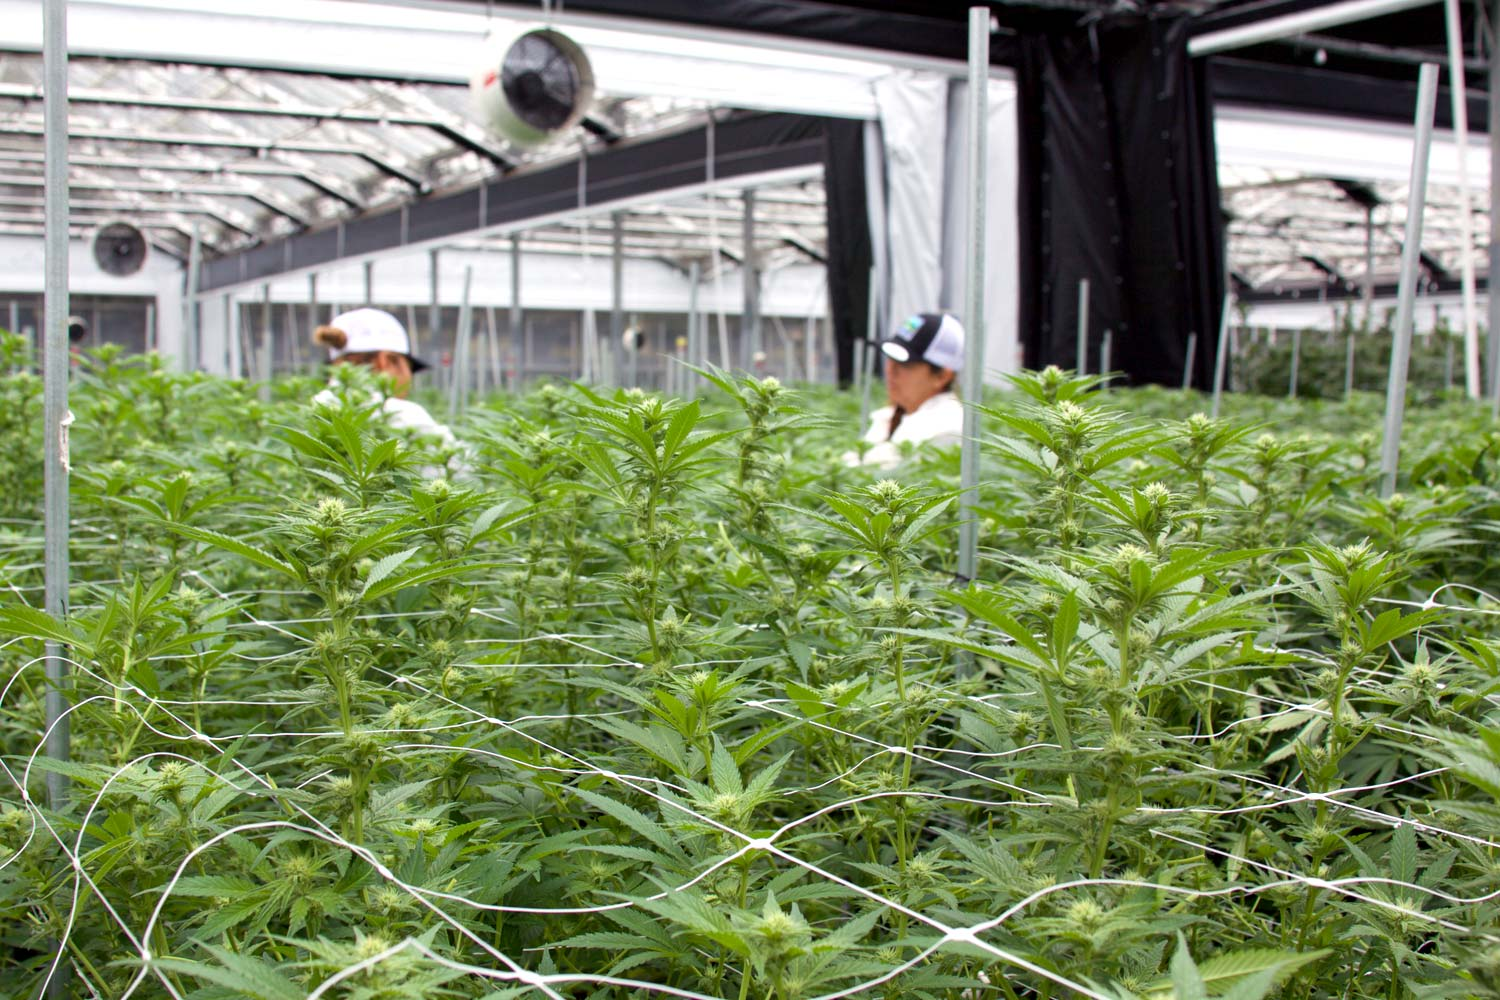 Workers in a field of plants